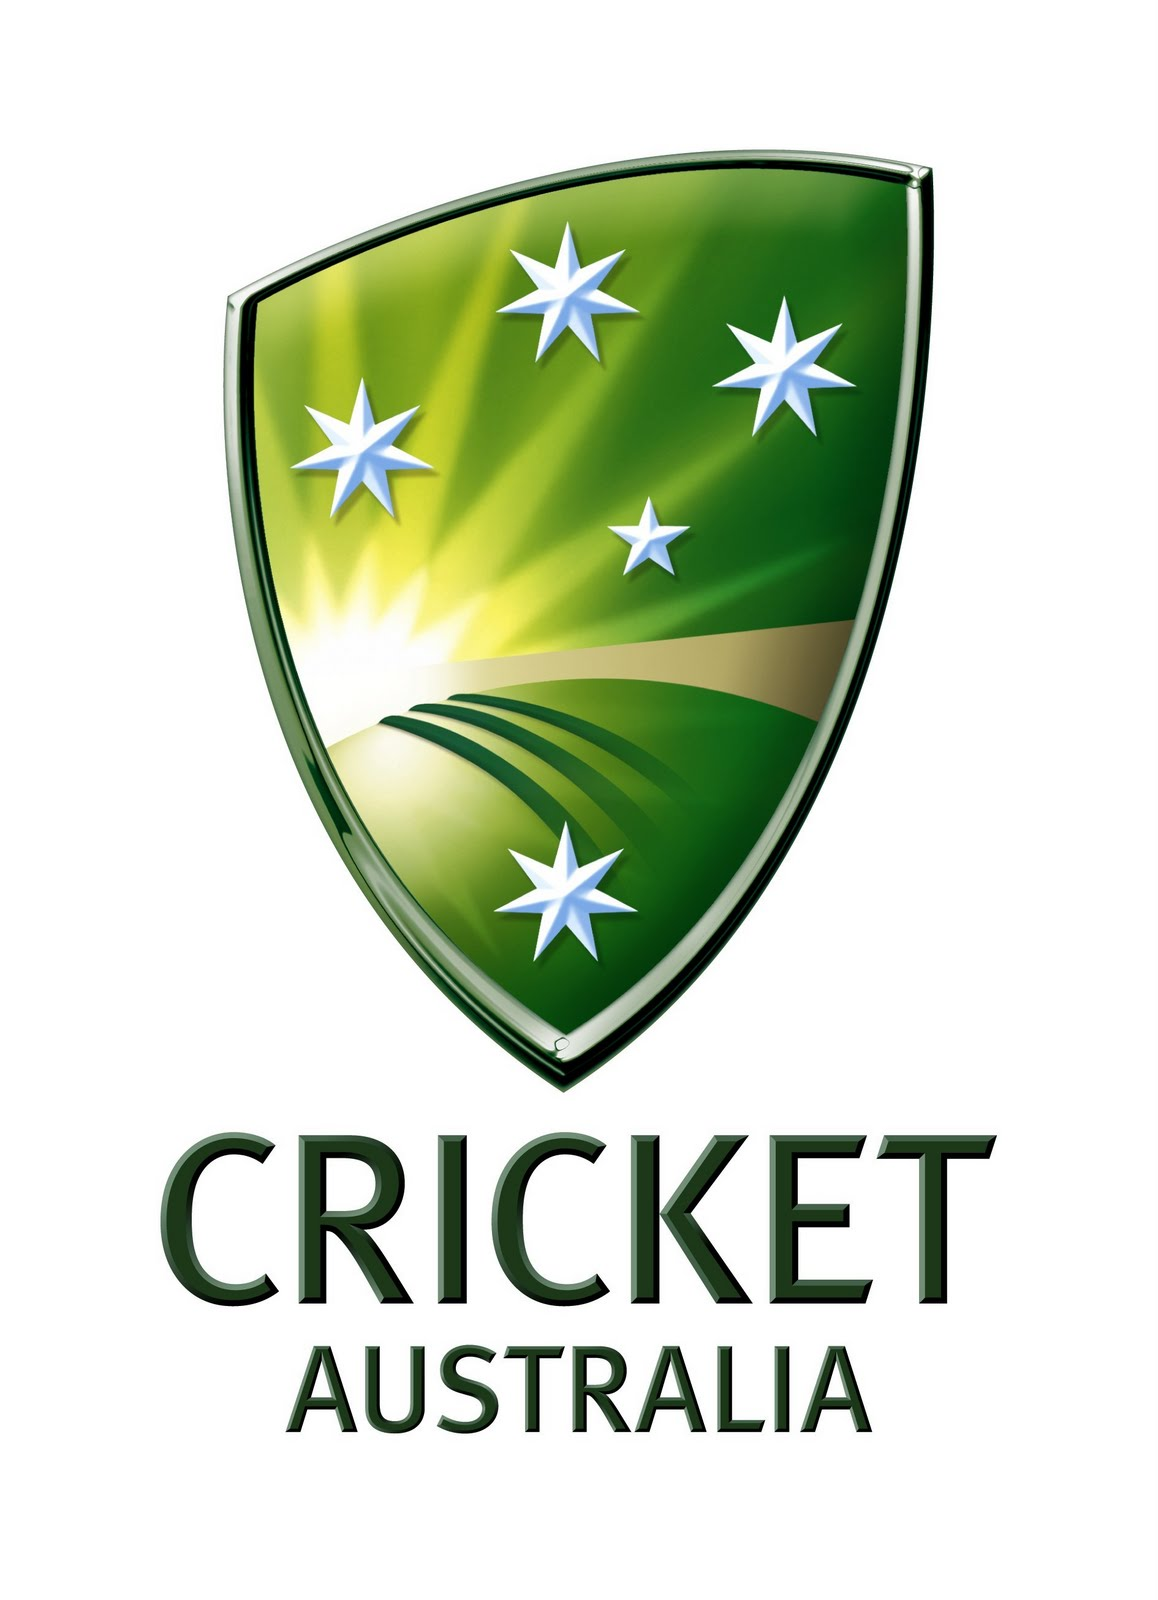 australia cricket logo picture mix sports